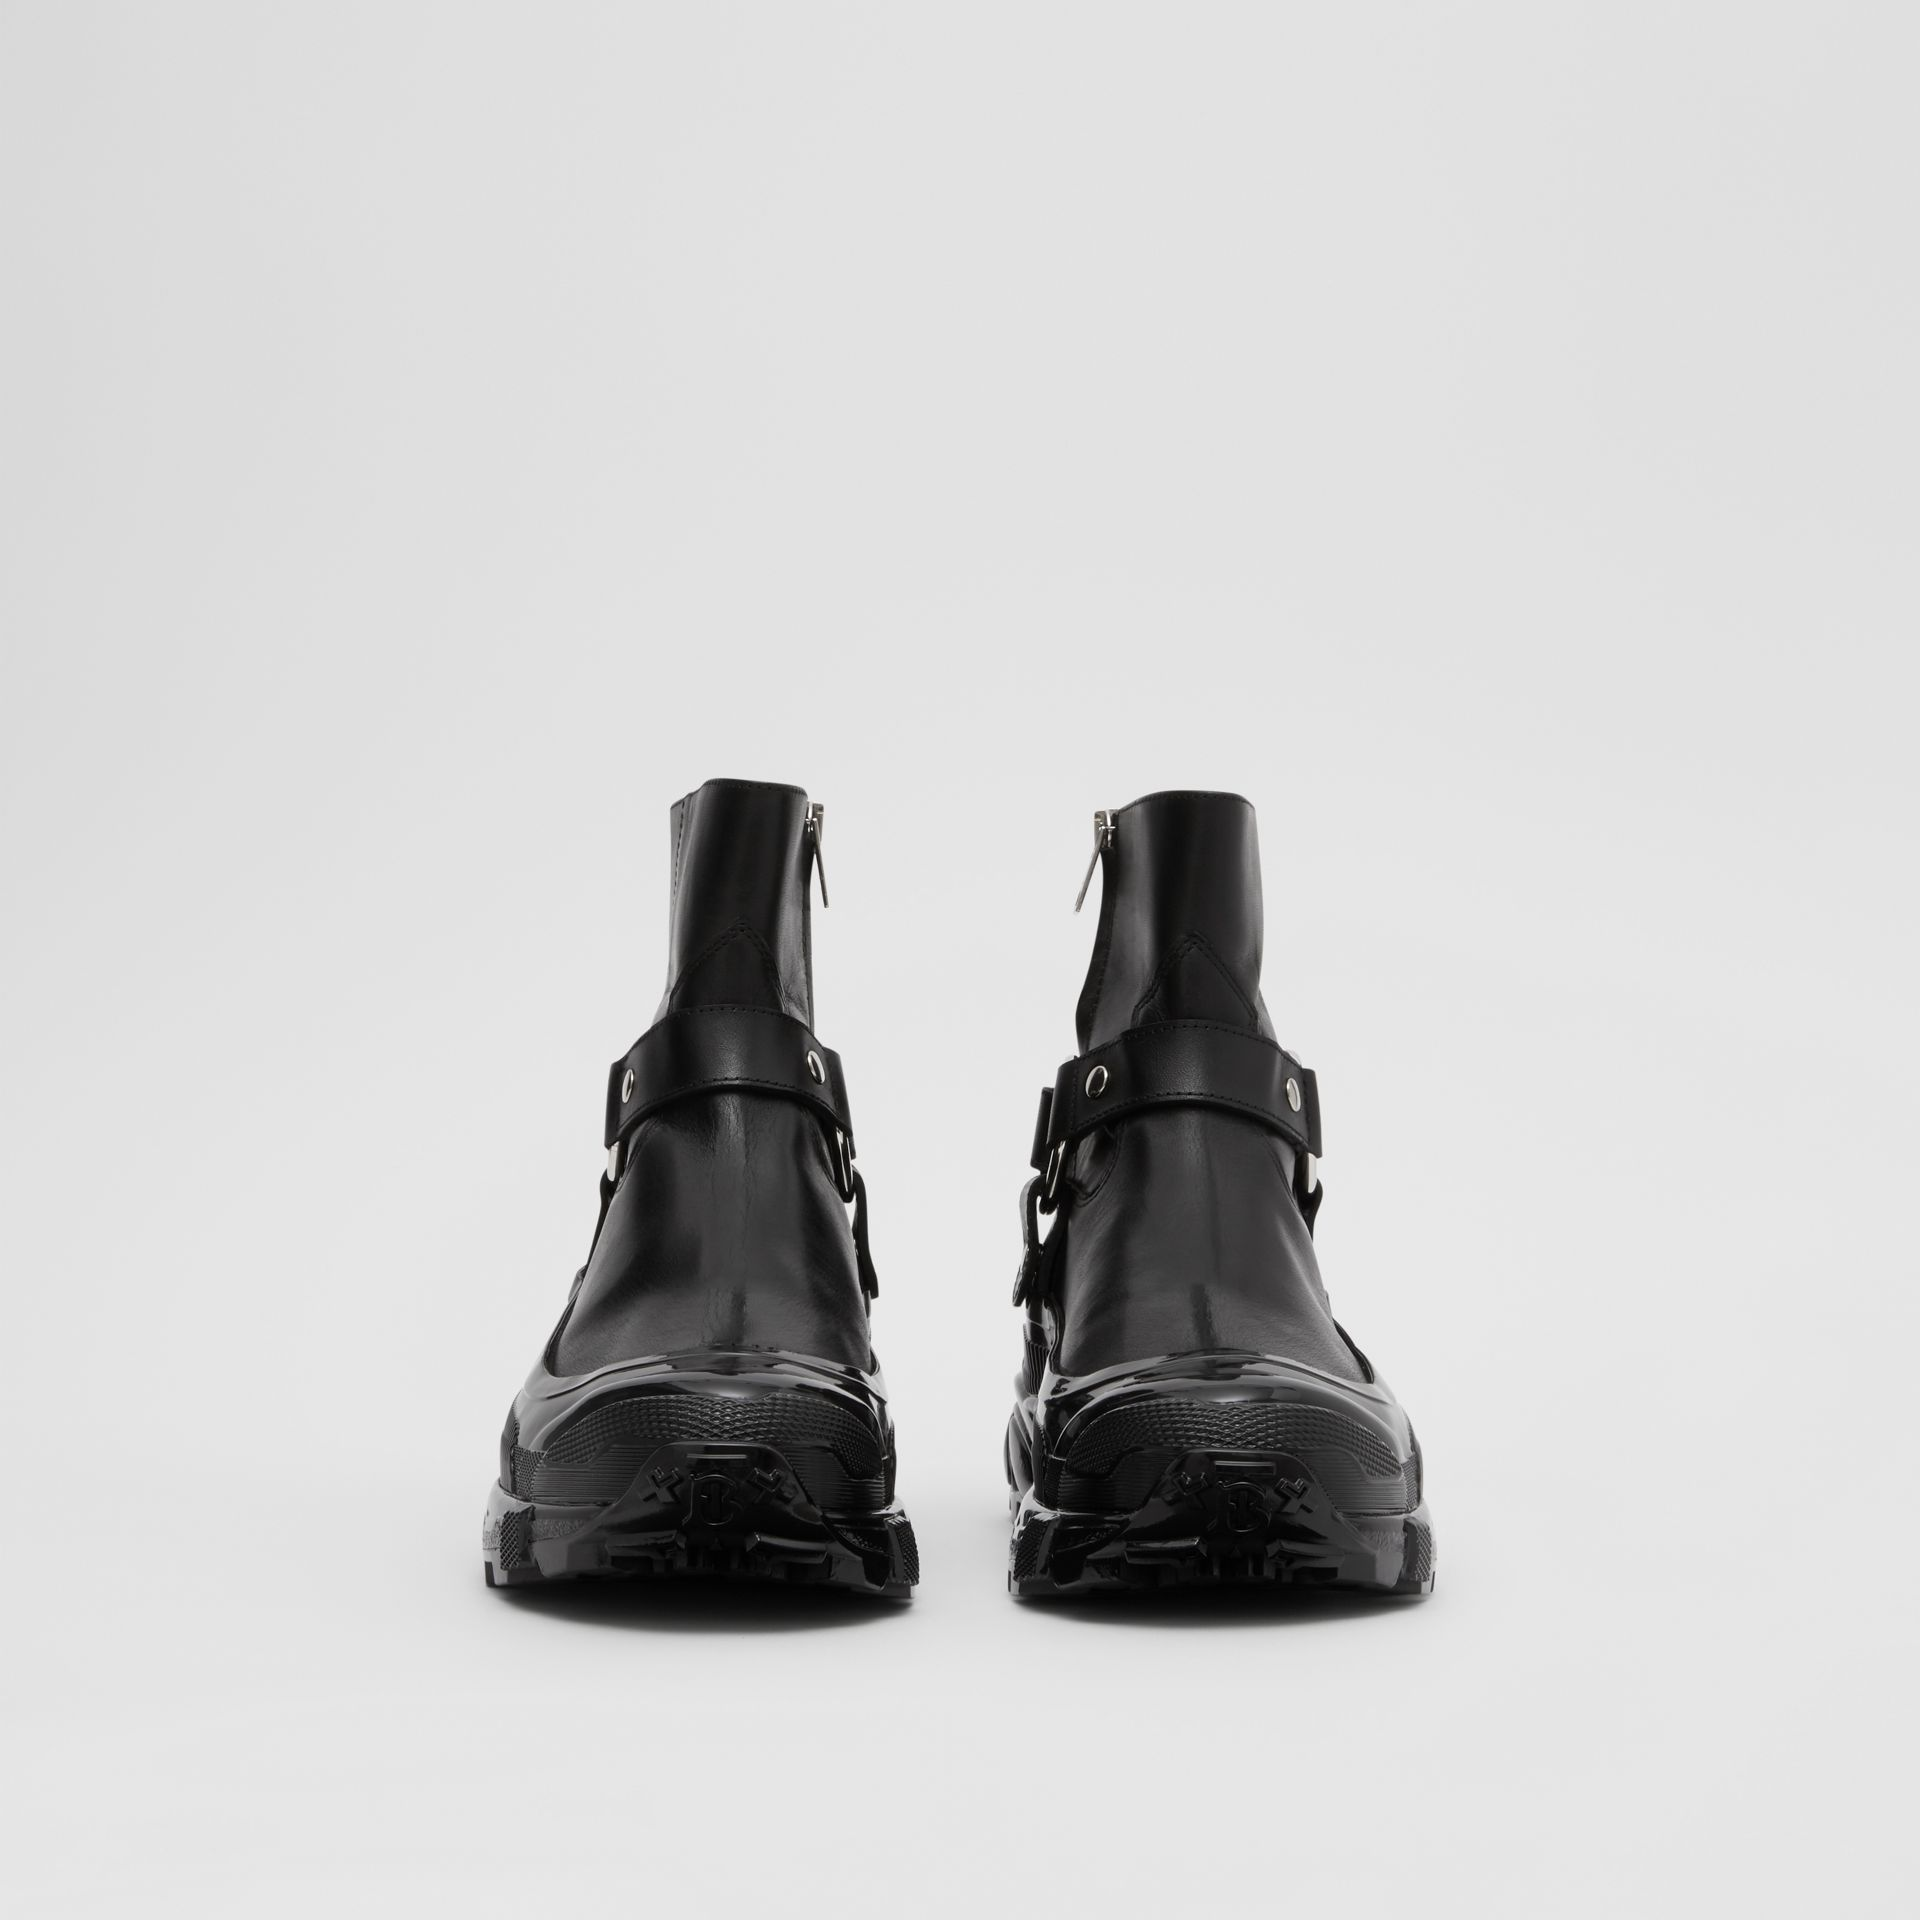 Monogram Motif Buckle Leather Boots in Black - Women | Burberry Singapore - gallery image 3